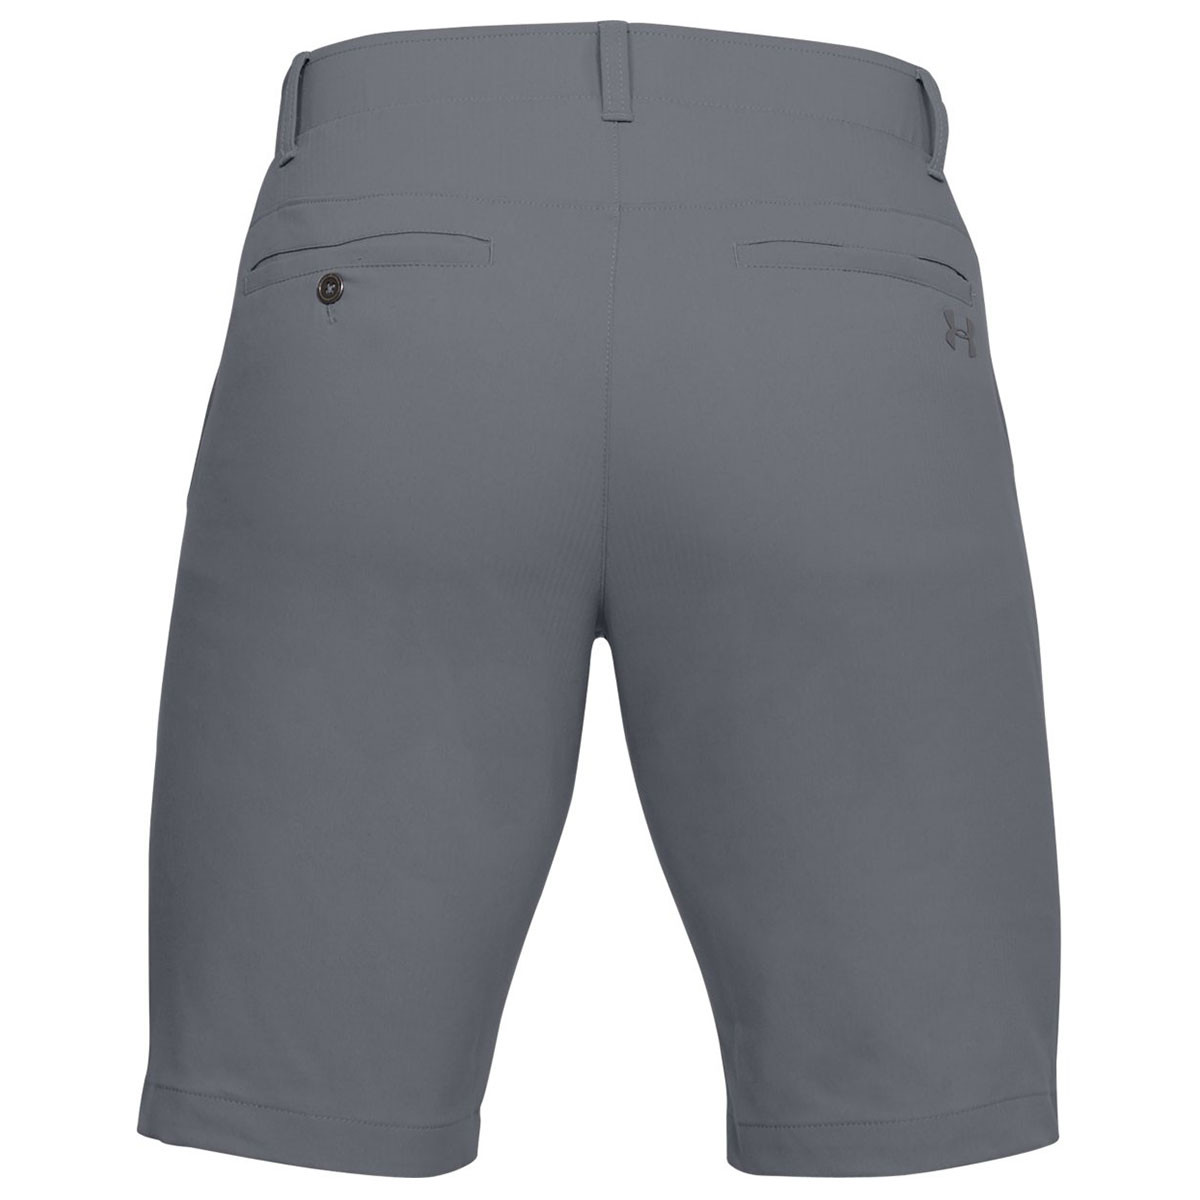 Under-Armour-Mens-Takeover-Taper-Mid-Length-Golf-Shorts-42-OFF-RRP thumbnail 24